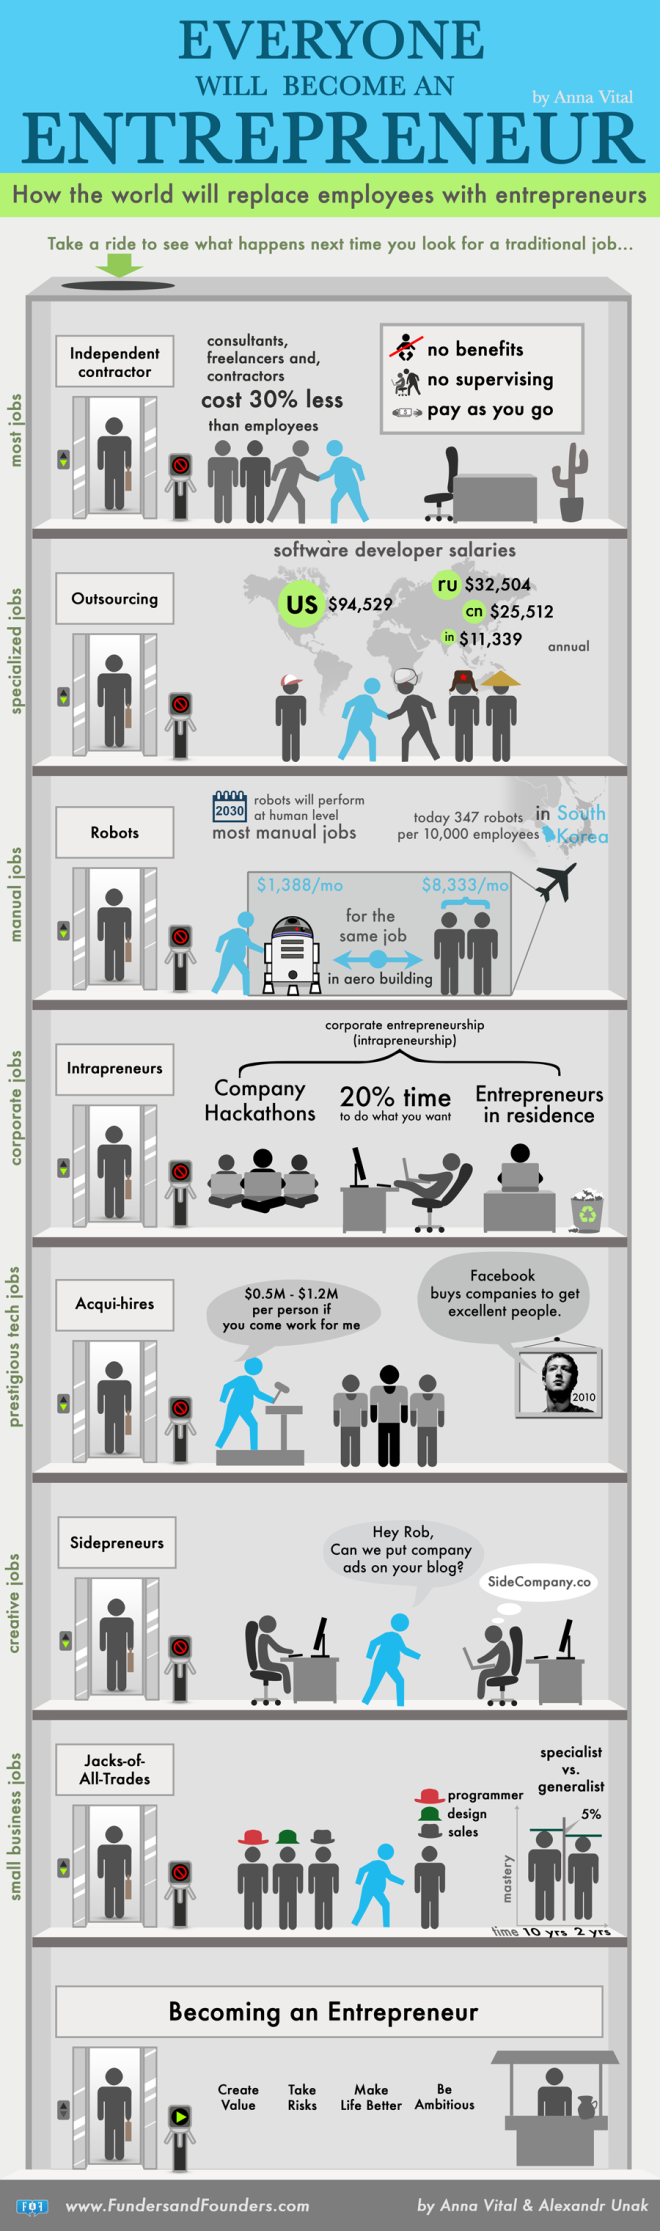 everyone-will-become-entrepreneur